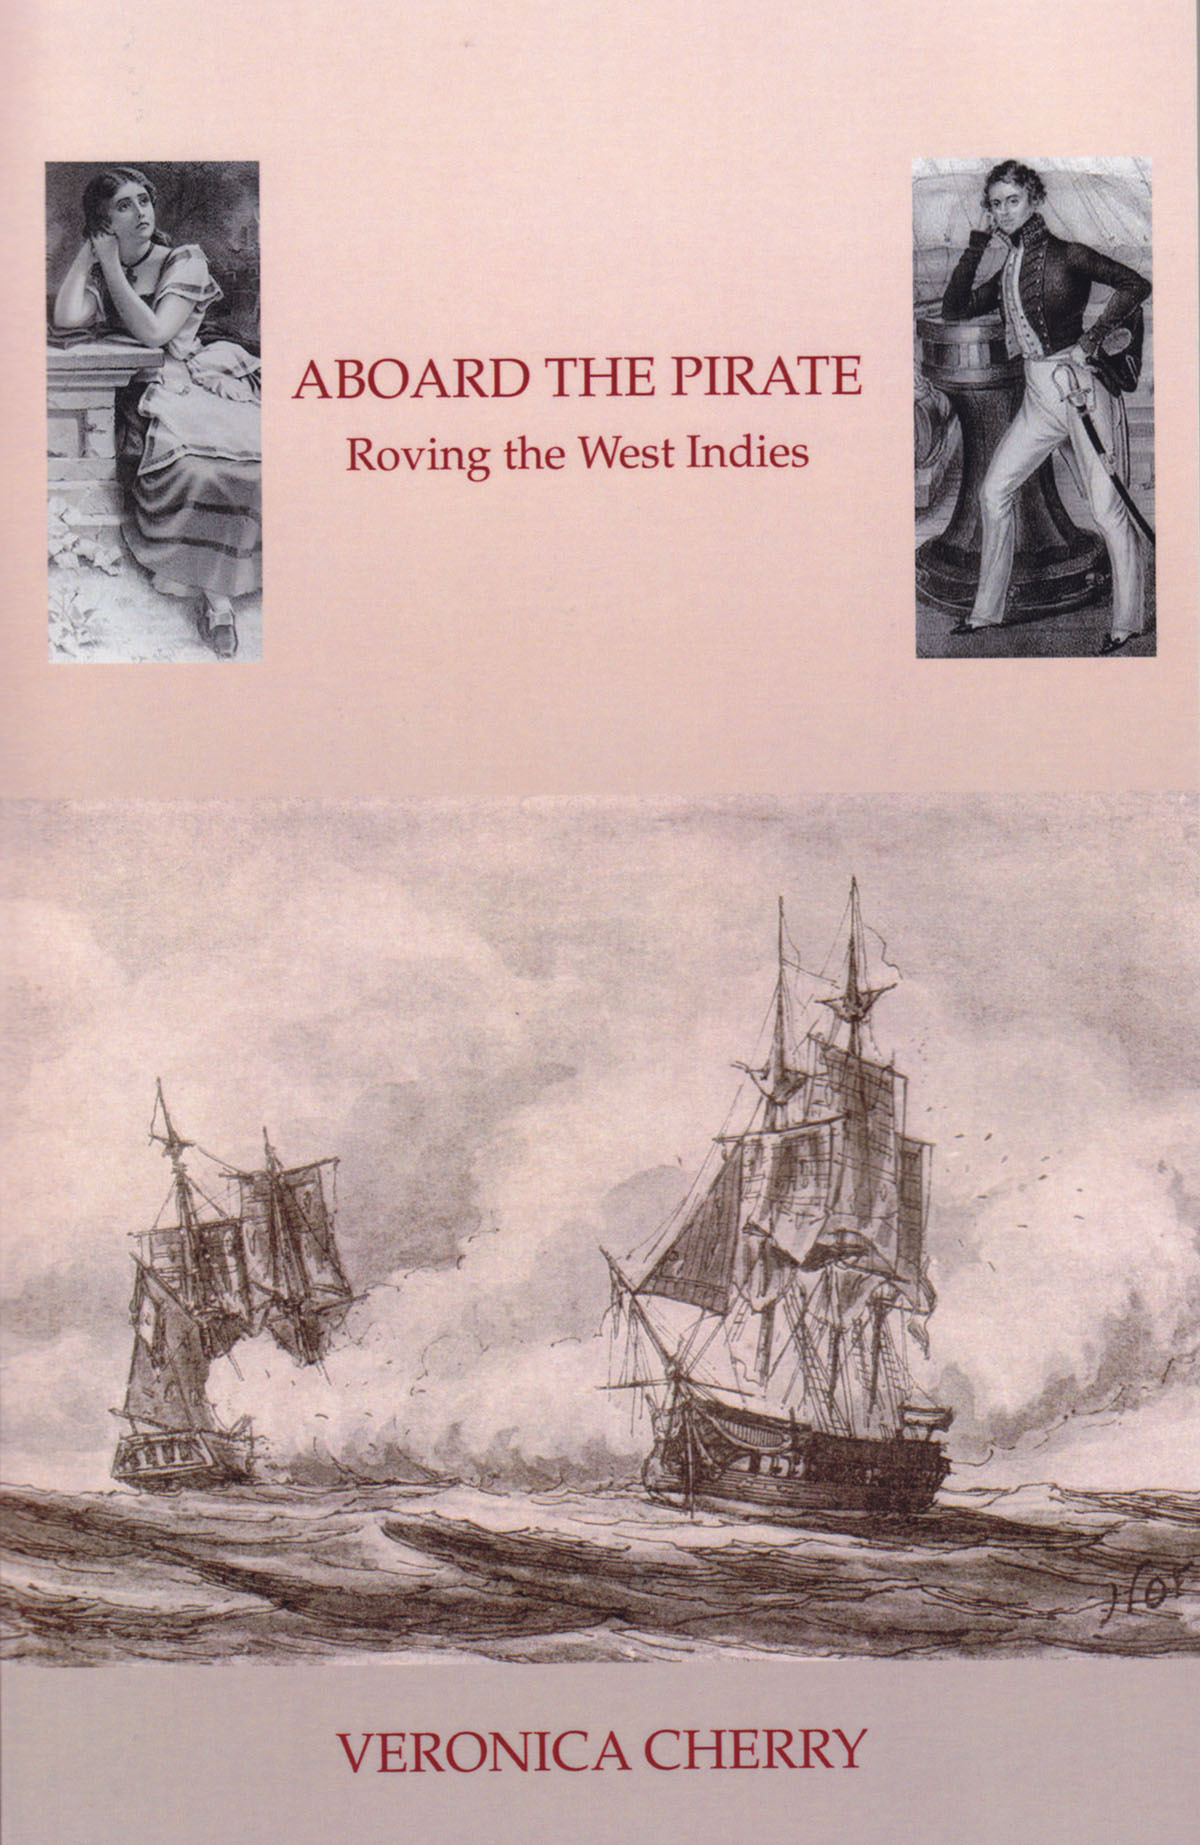 BOOK REVIEW – Aboard The Pirate: Roving The West Indies (novel) By Veronica Cherry, Gallant Books, (2012) Reviewed by Nathan Albright In reading this dramatic and action-packed novel about piracy and children in extreme peril, it is difficult not to suspect that the author has a variety of personal and professional motives in framing the story as she does.  The novel begins and ends with a slight time shift, in that two Coast Guardsmen fighting on the front lines of the drug war interact with a couple of characters of the previous period of widespread piracy at the beginning of the 19th century in the Gulf Coast, which gave us antiheroes like the Lafitte brothers and Jose Gaspar.  Included among these possible lessons includes the relationship between piracy as well as the illicit trafficking of souls and drugs and the moral corruption of those who conduct and turn a blind eye to the trade. (read the full review)